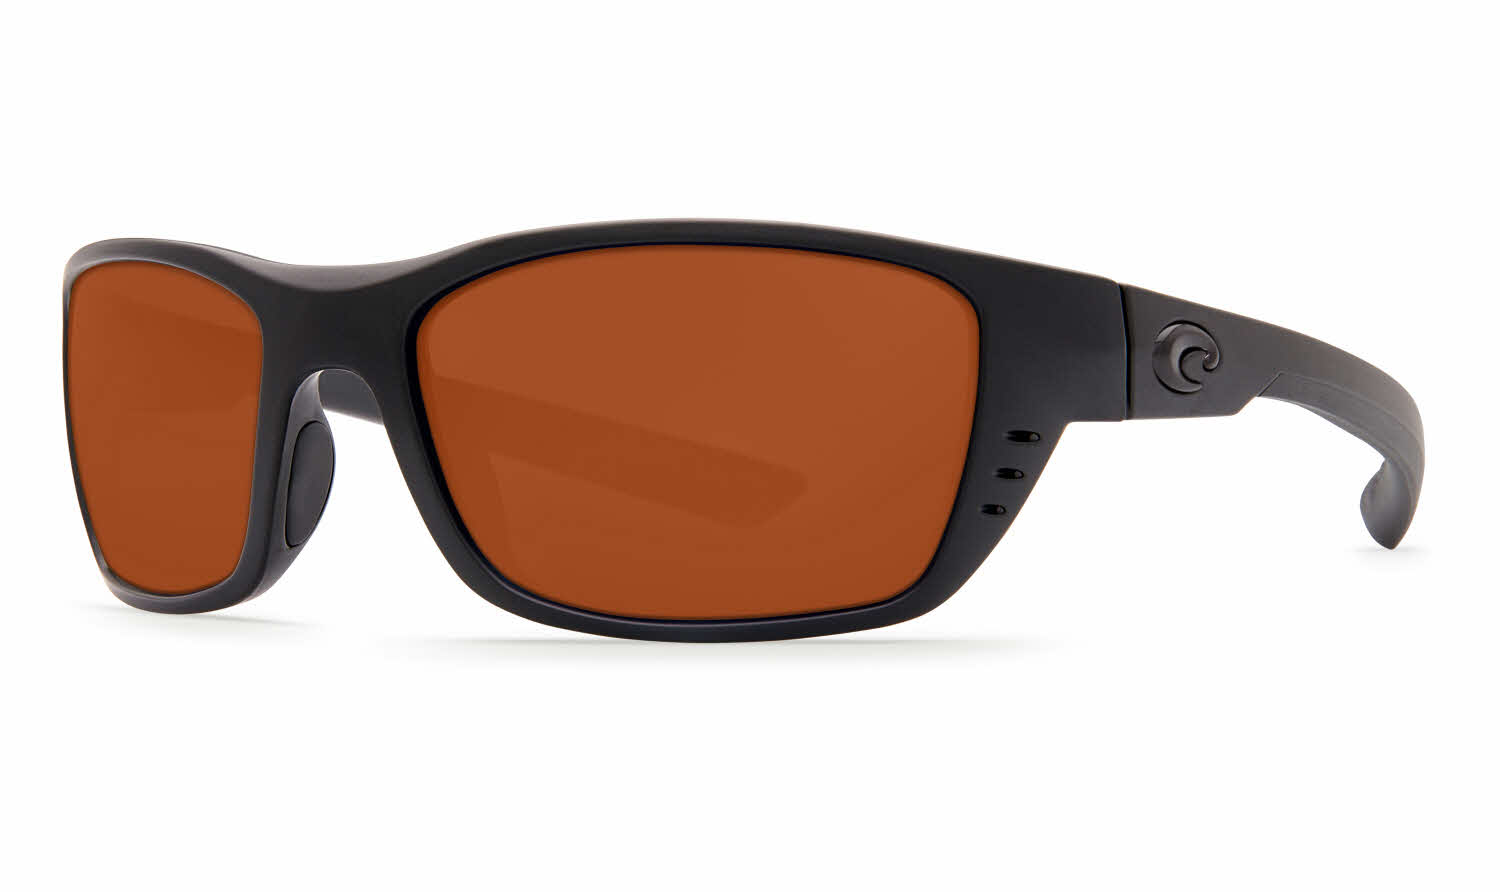 Sunglasses Similar To Costa Del  costa sunglasses free shipping framesdirect com